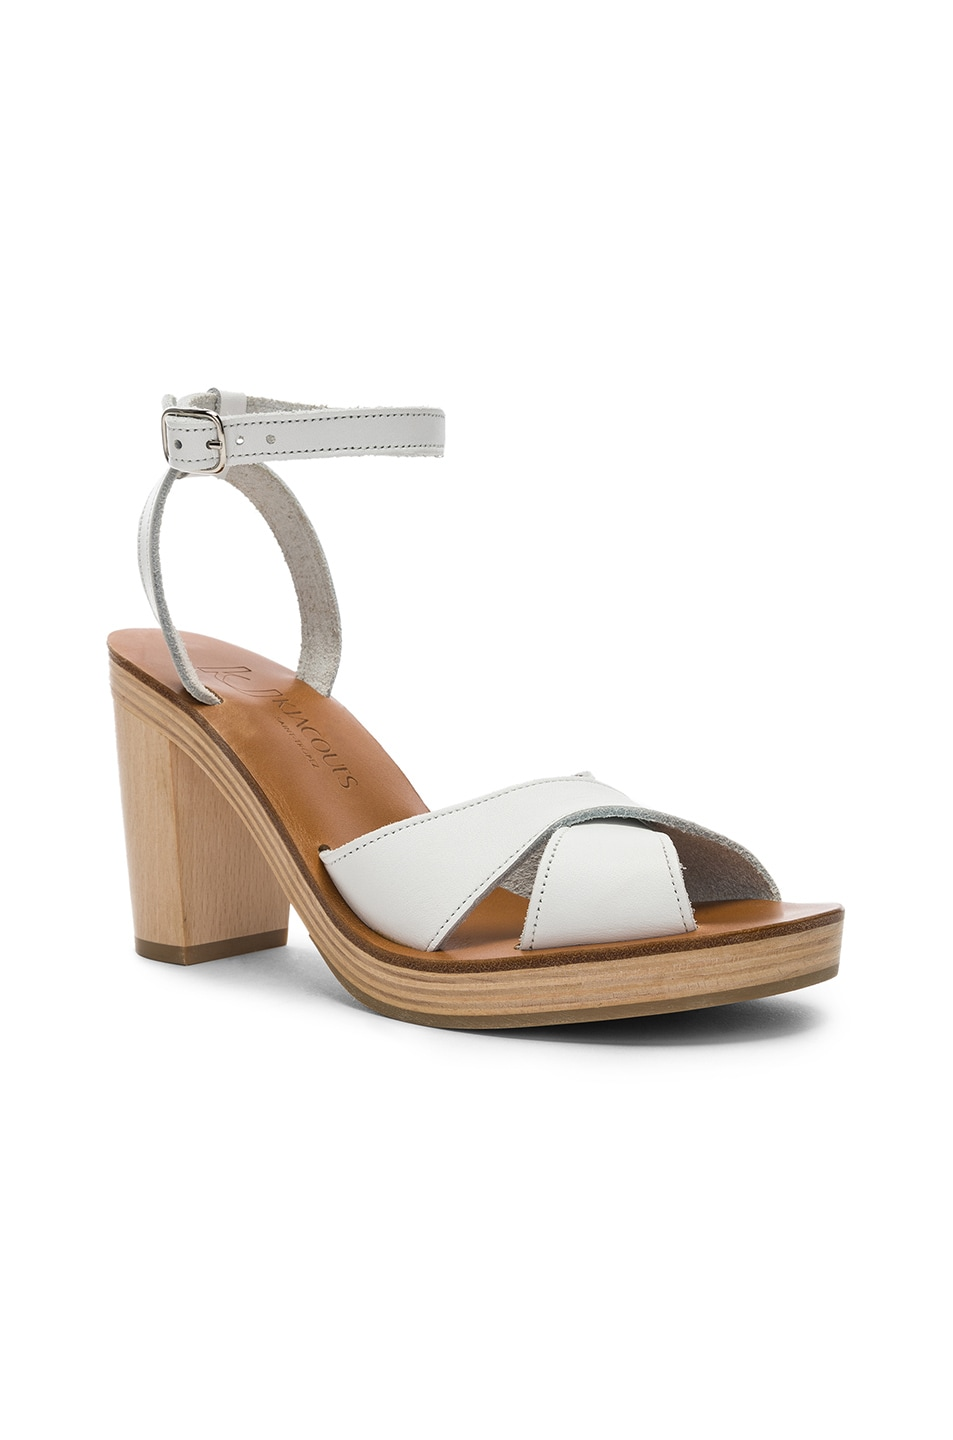 Image 2 of K Jacques Figuier Sandal in Pul Blanc